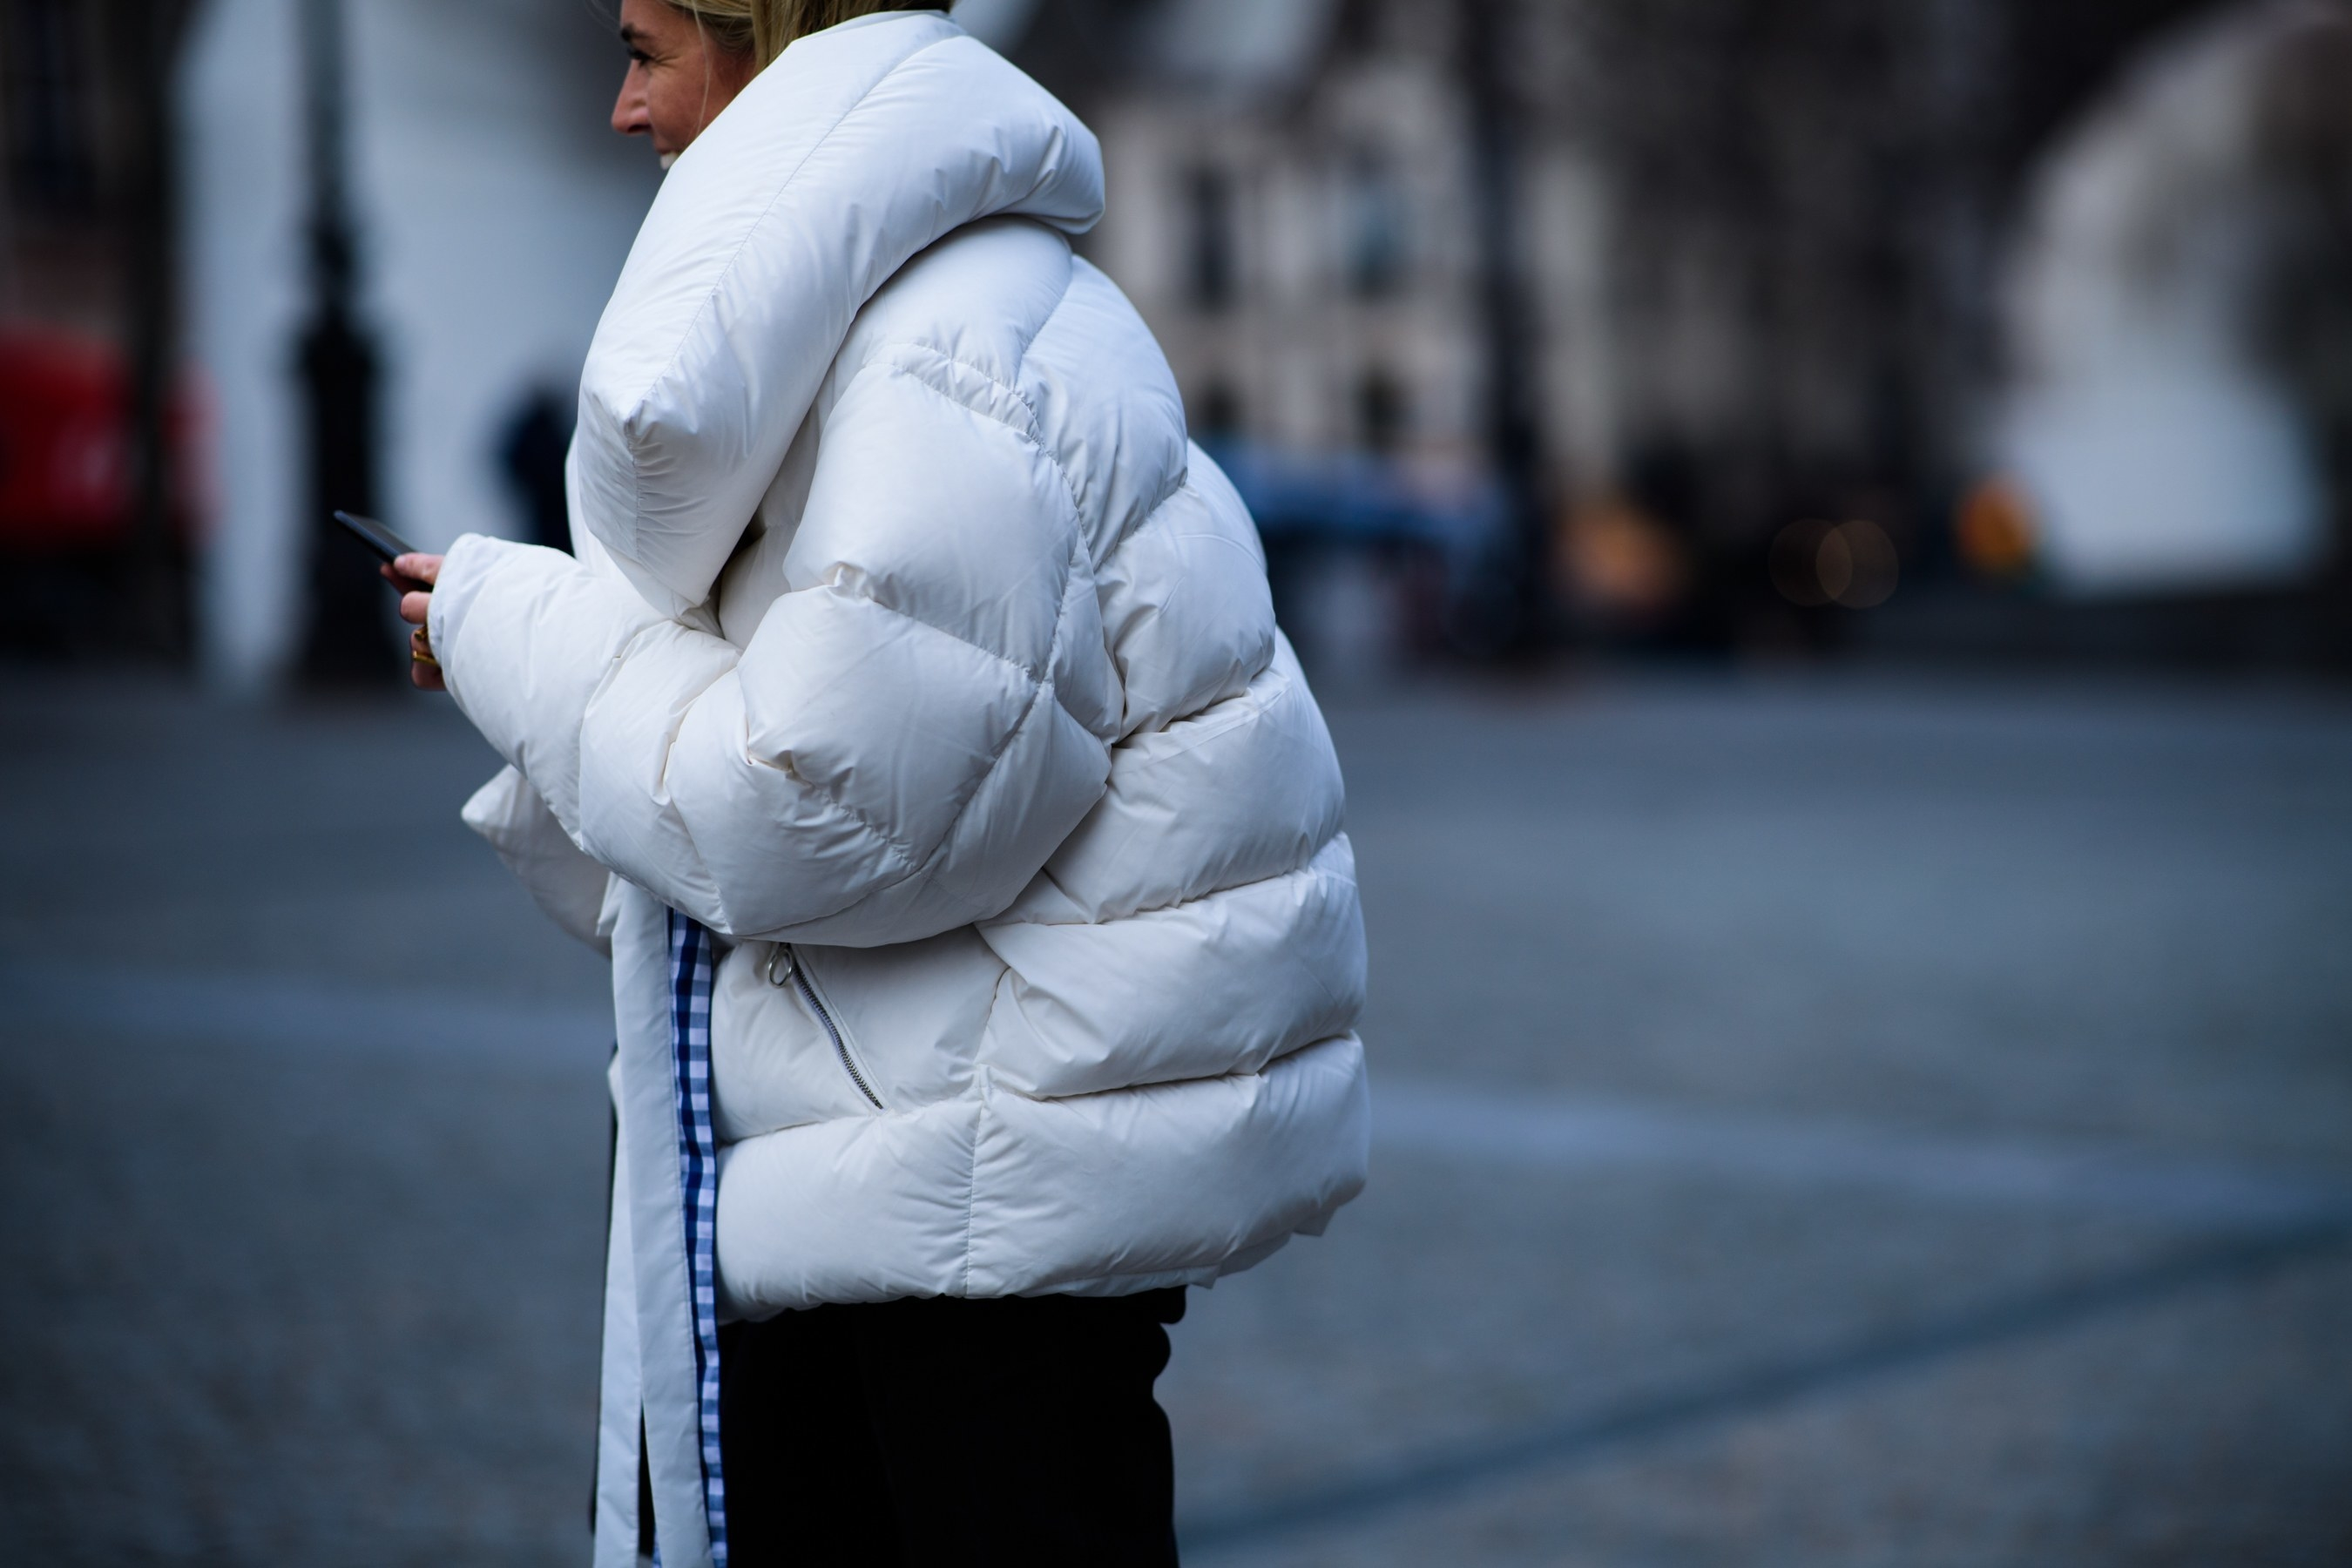 It's all in the outerwear...